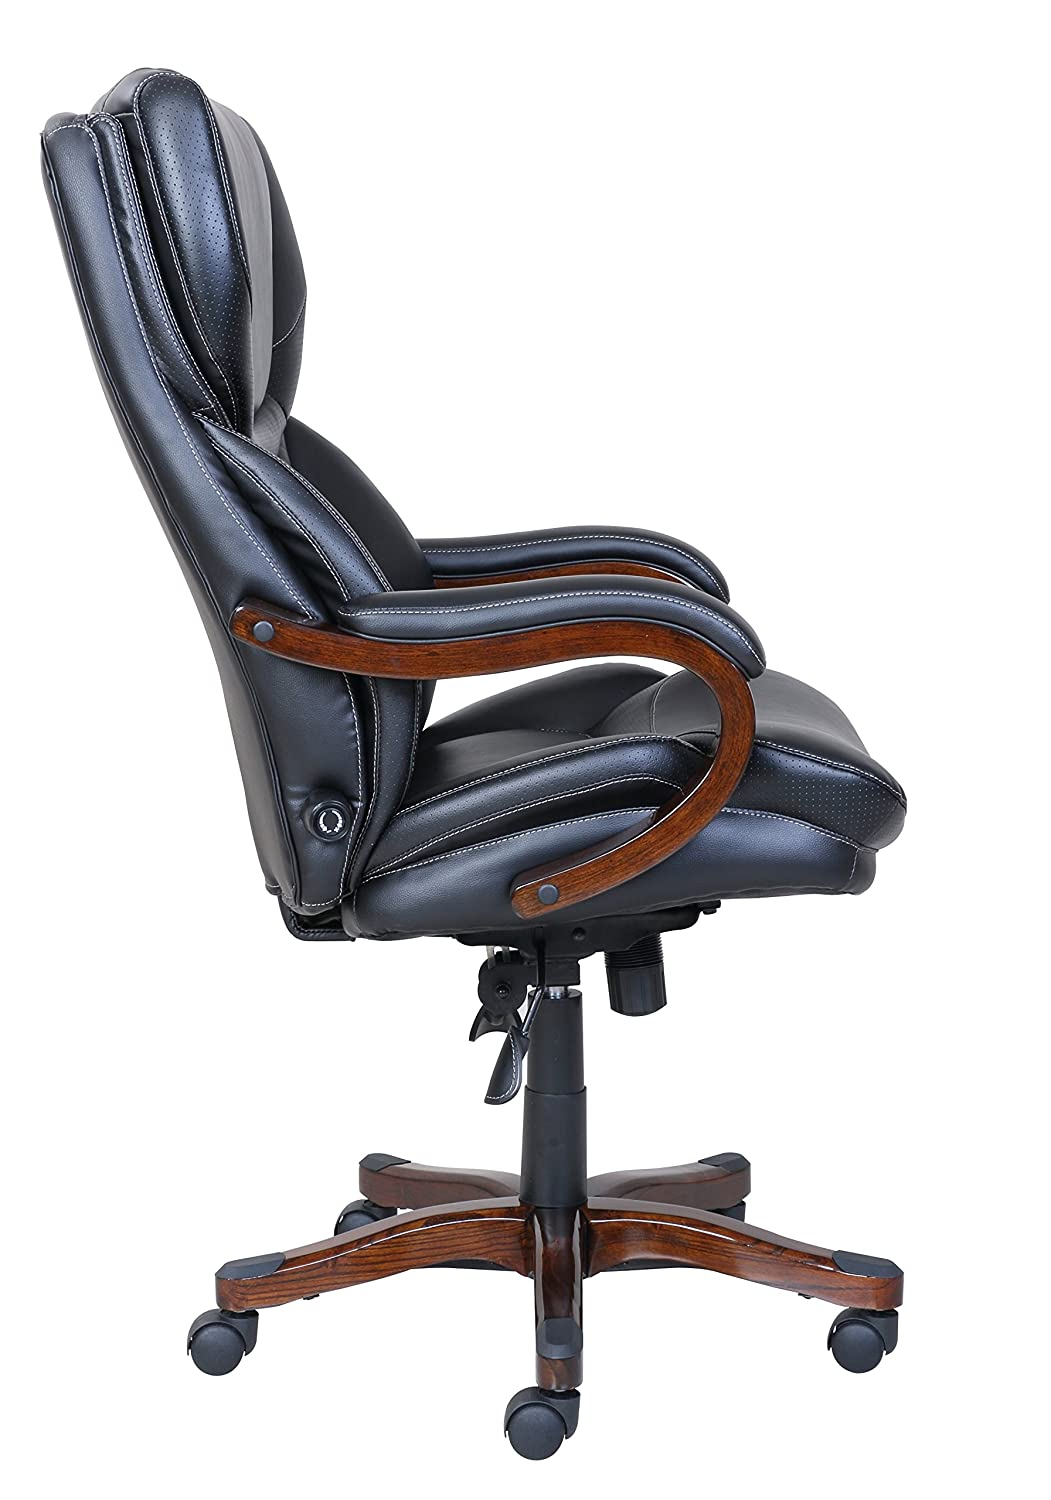 office executive cd chair image serta study alission rotate